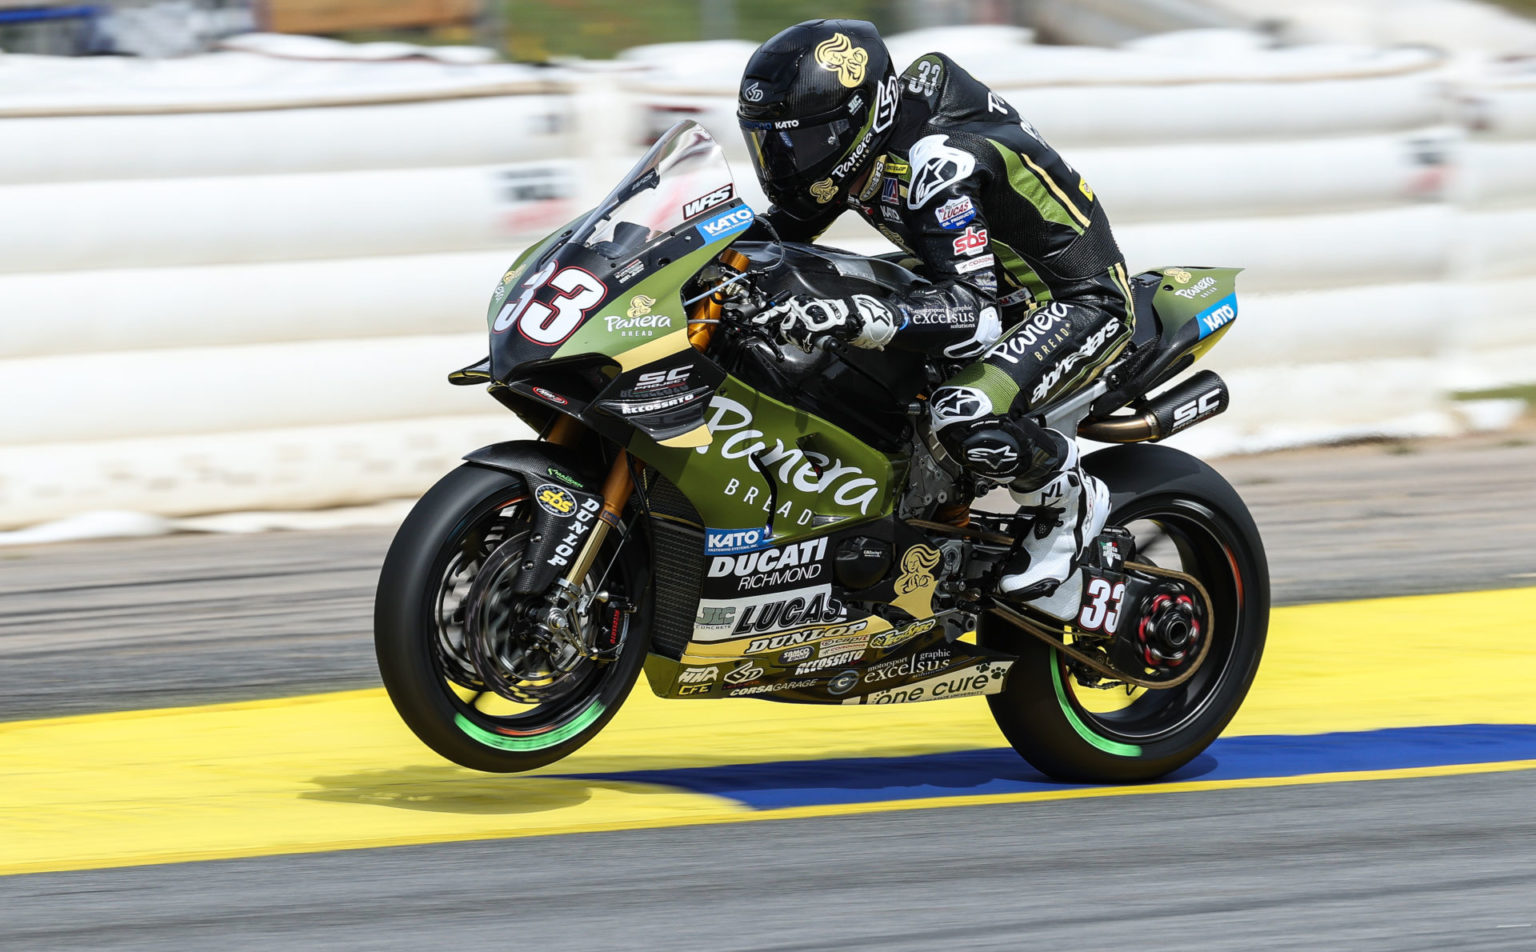 MotoAmerica: Even More From The Races At Road Atlanta